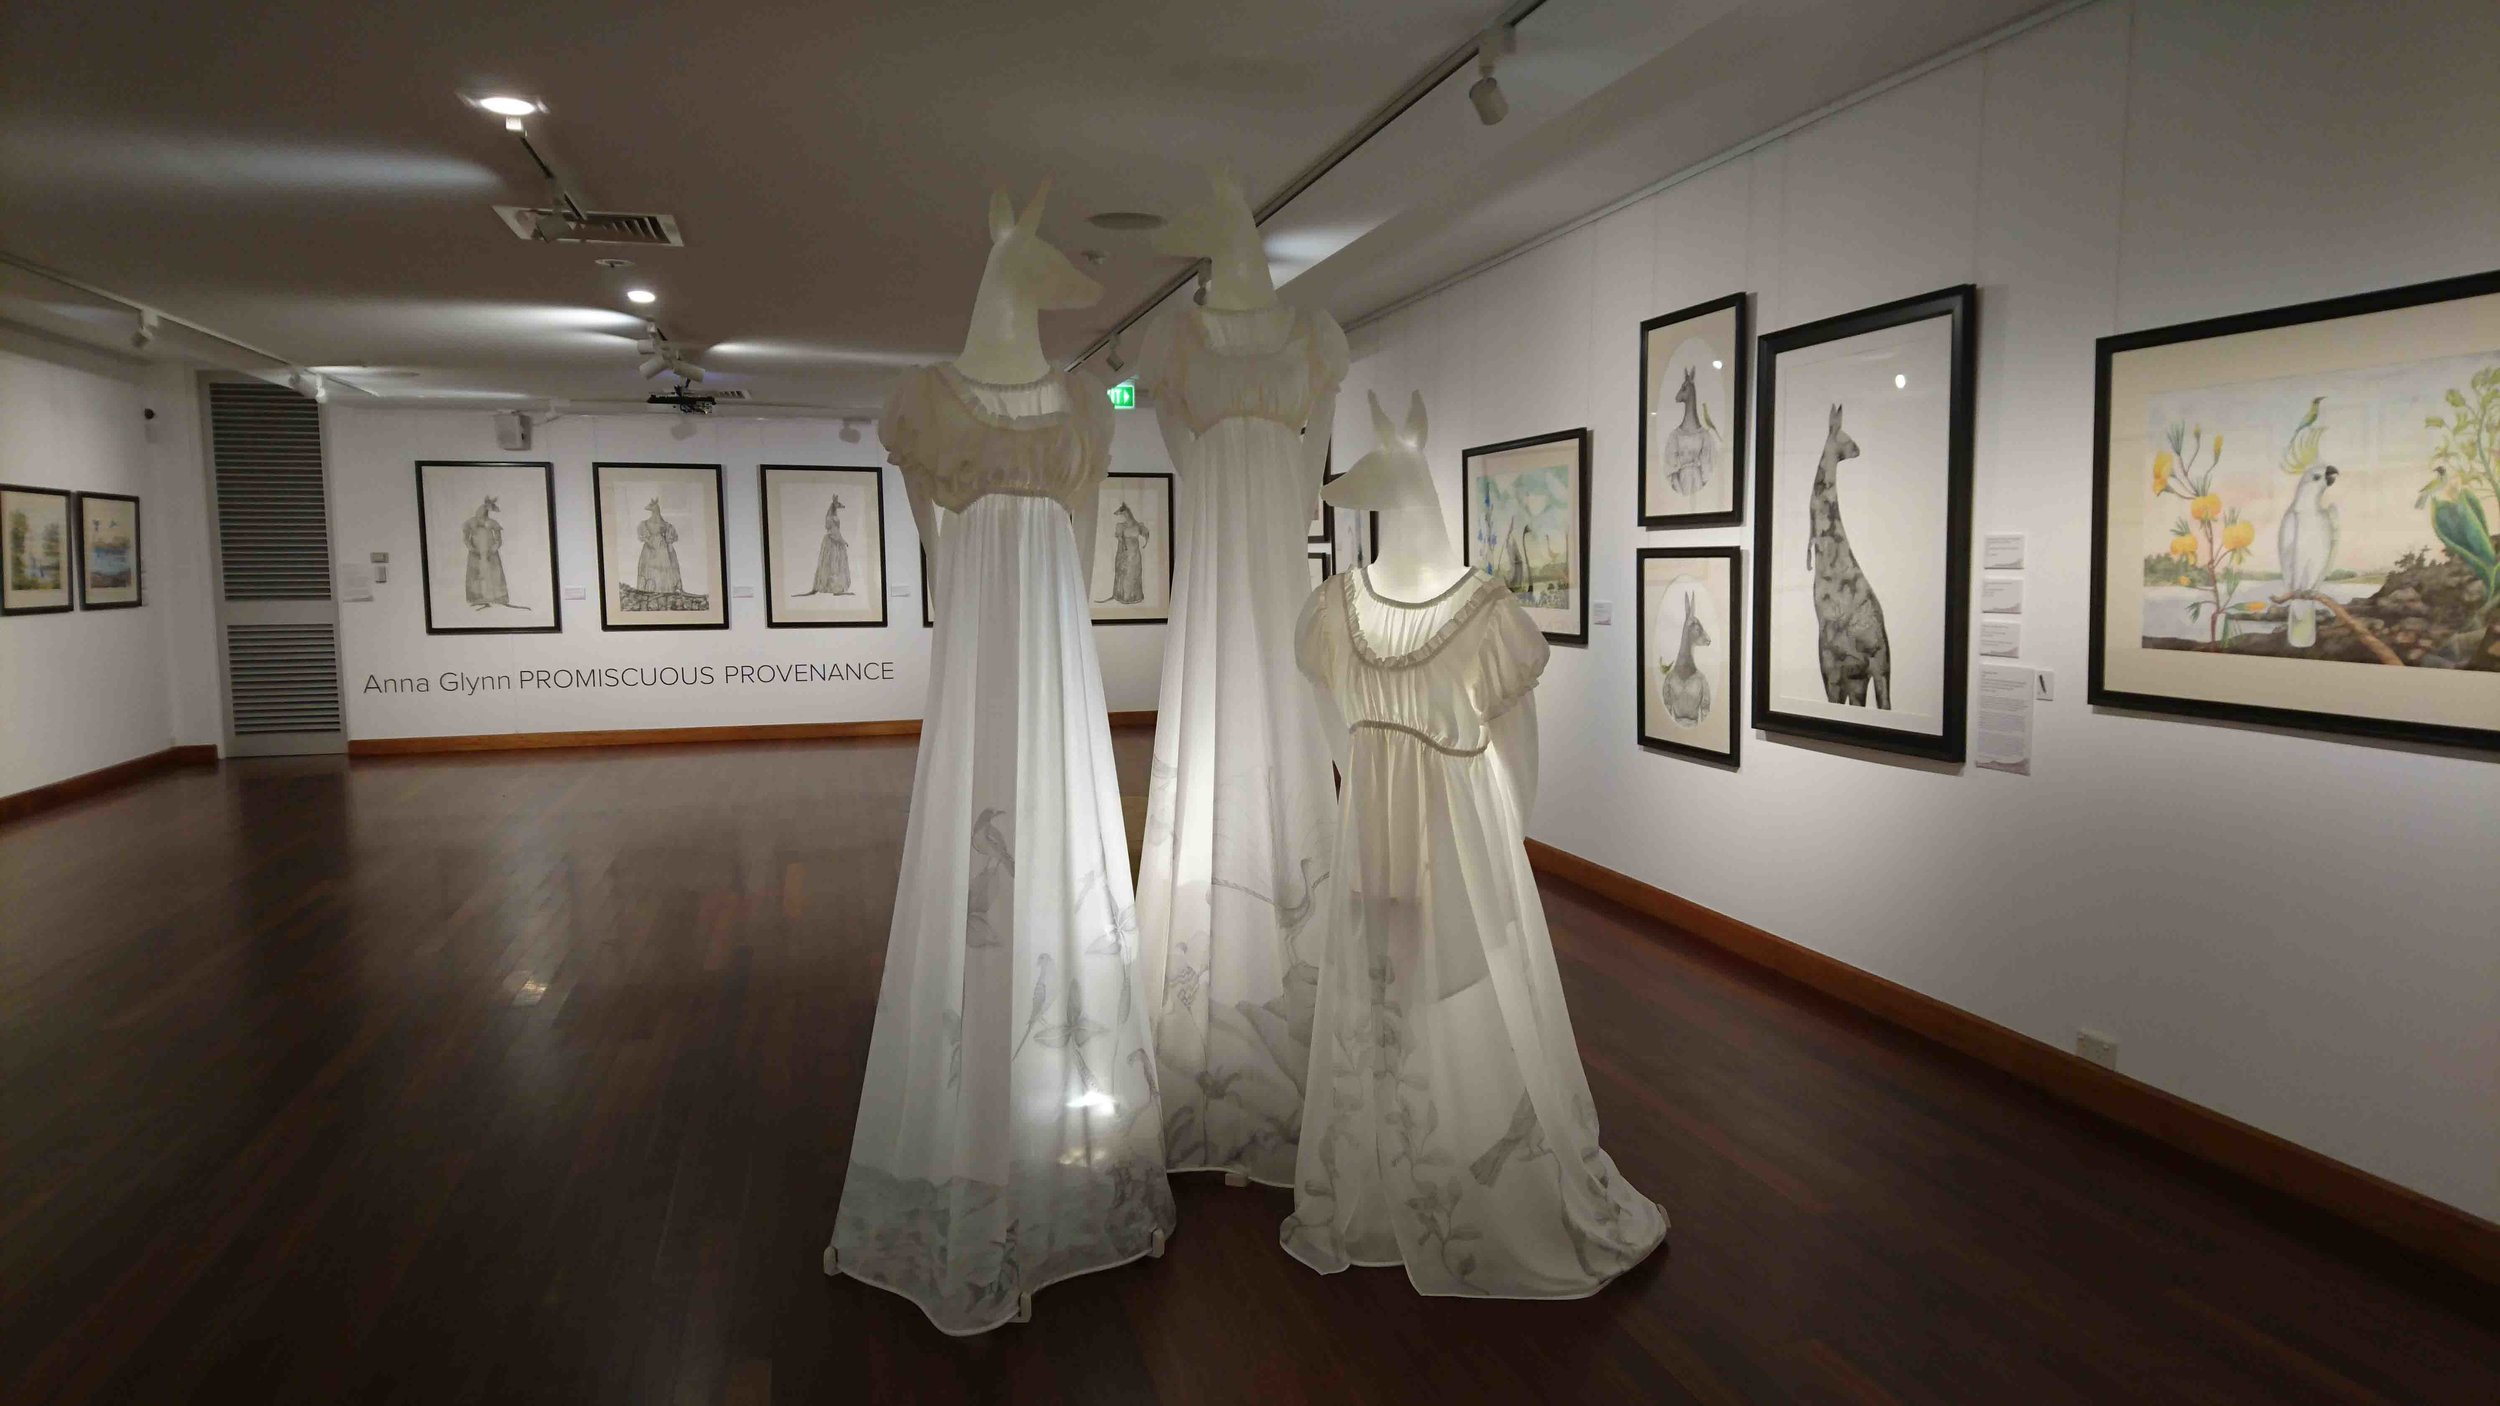 View of Promiscuous Provenance exhibition featuring Gowns | Artist - Anna Glynn